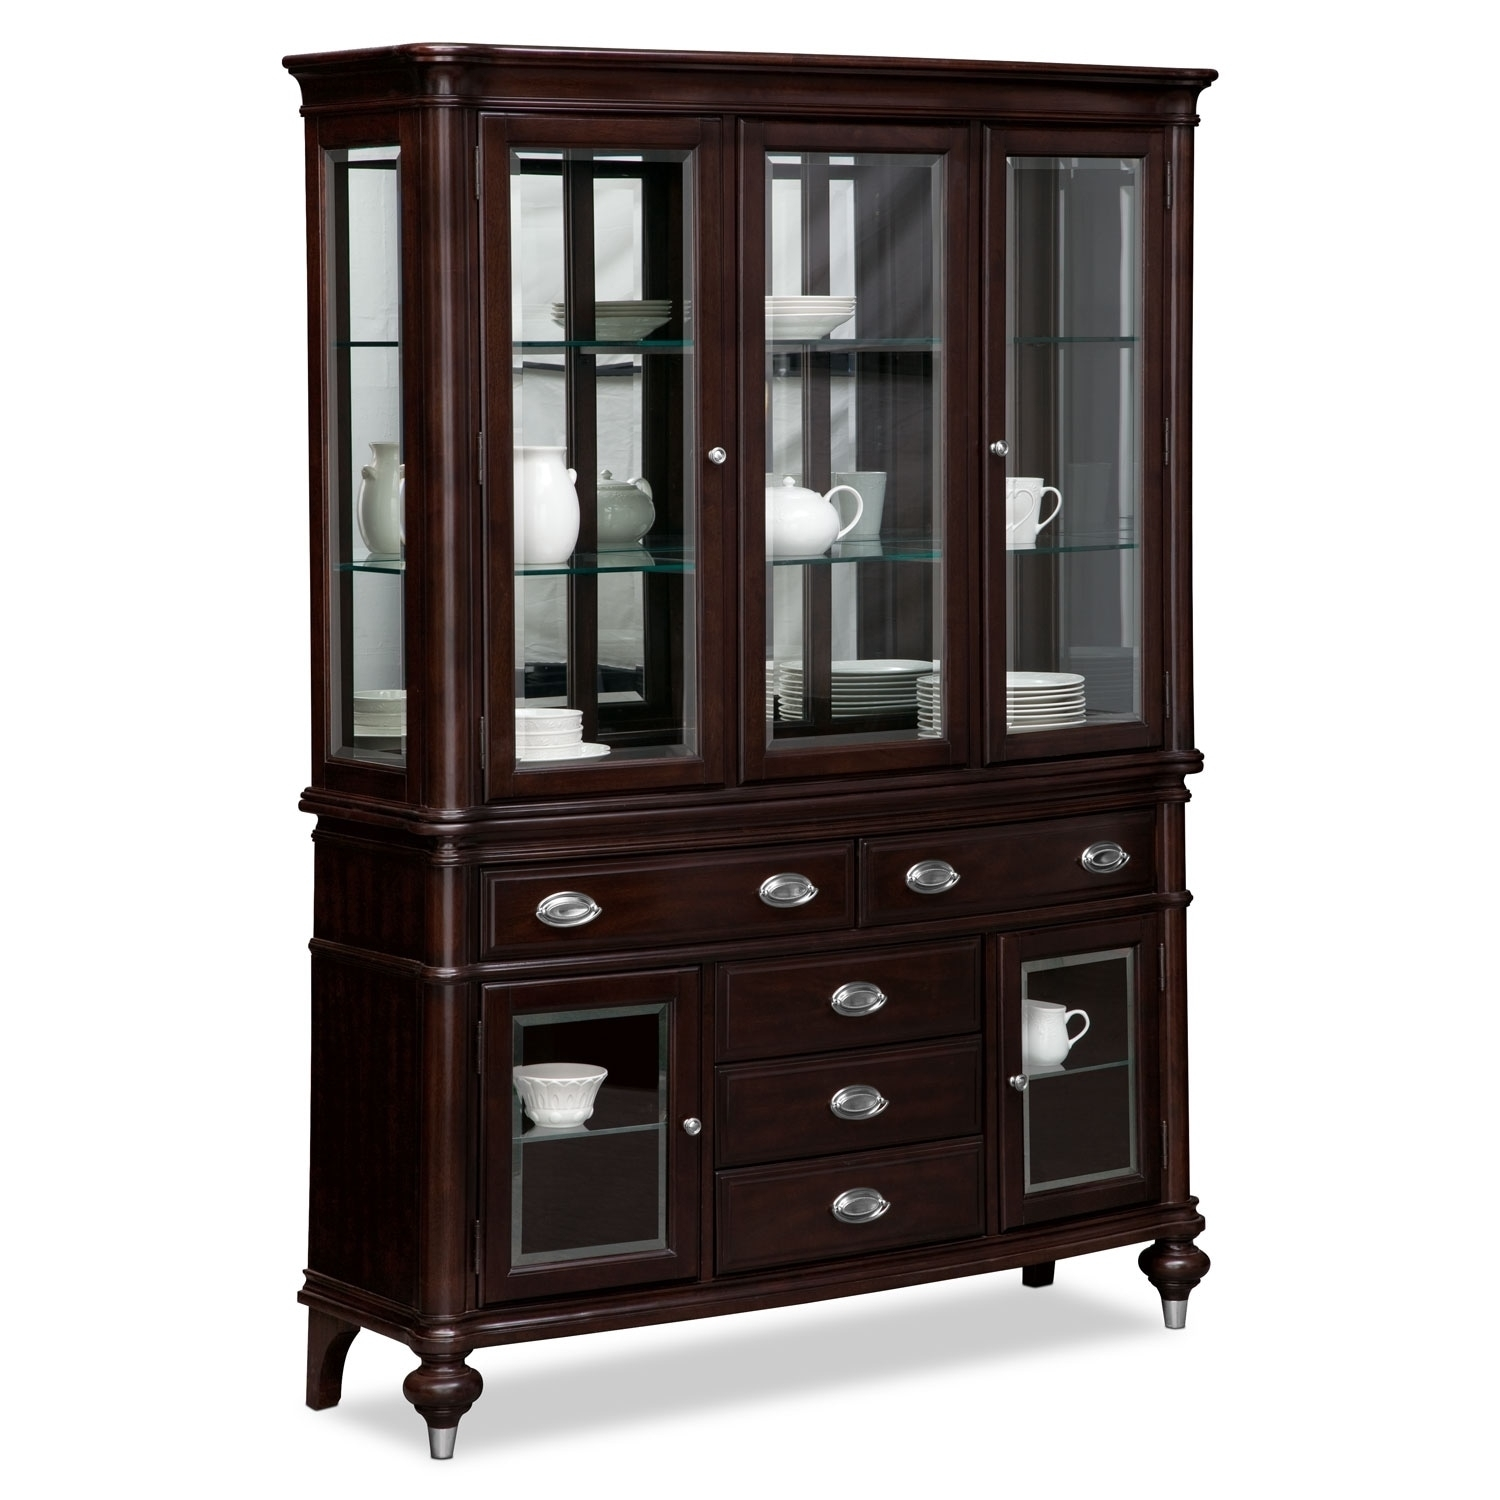 Buffet & Sideboard Cabinets | Value City Furniture And Mattresses With Regard To 2018 Brown Wood 72 Inch Sideboards (#4 of 20)